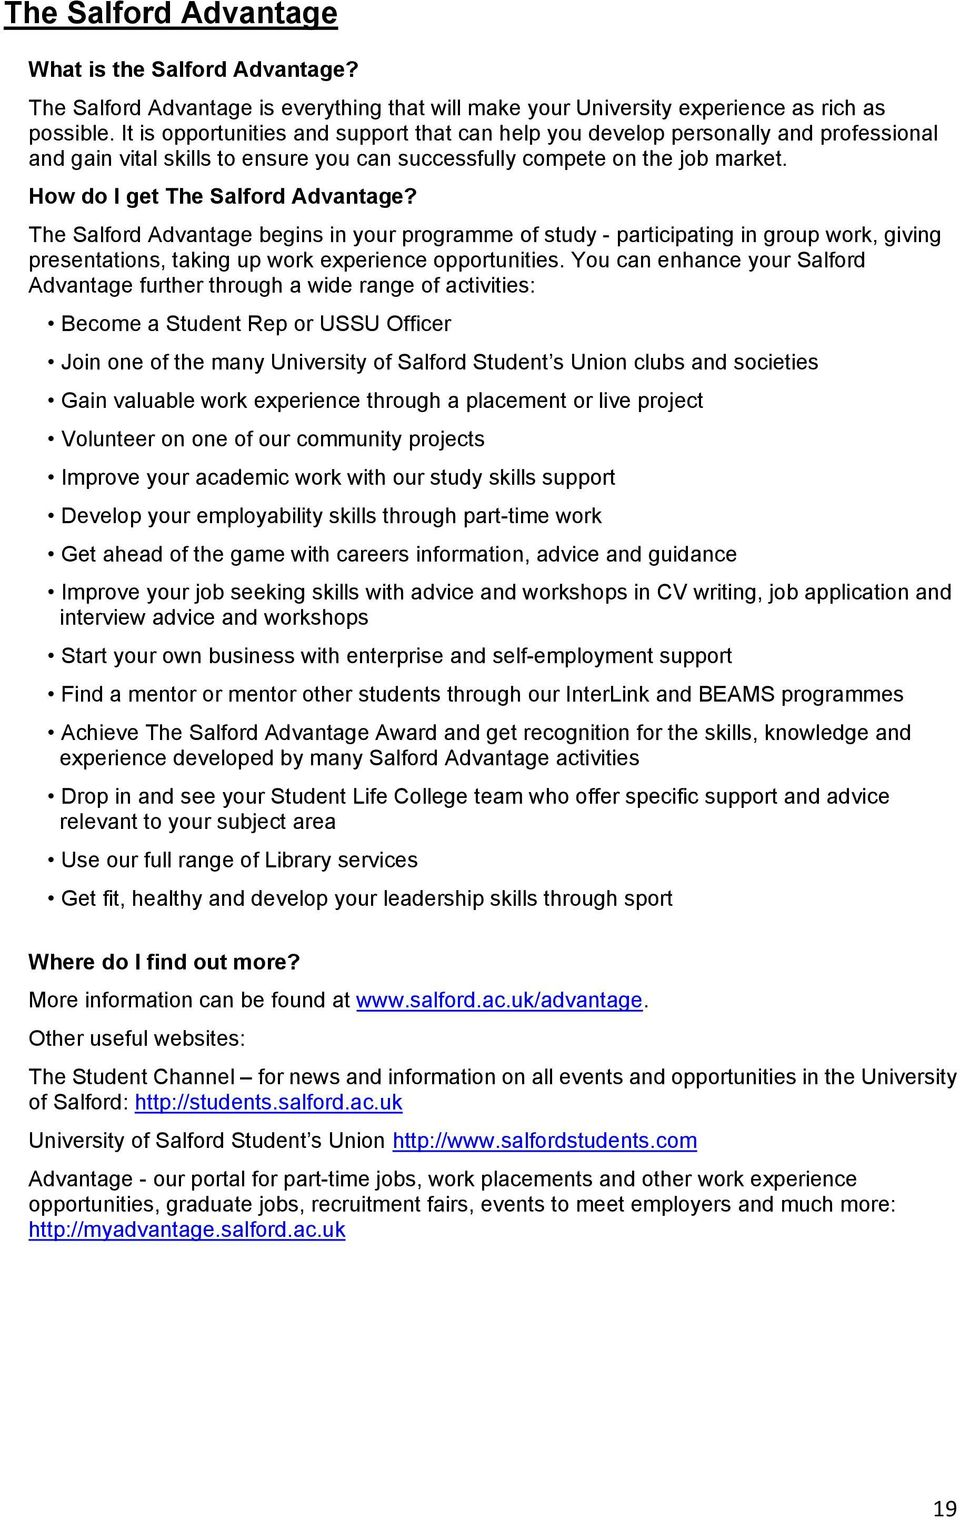 How do I get The Salford Advantage? The Salford Advantage begins in your programme of study - participating in group work, giving presentations, taking up work experience opportunities.